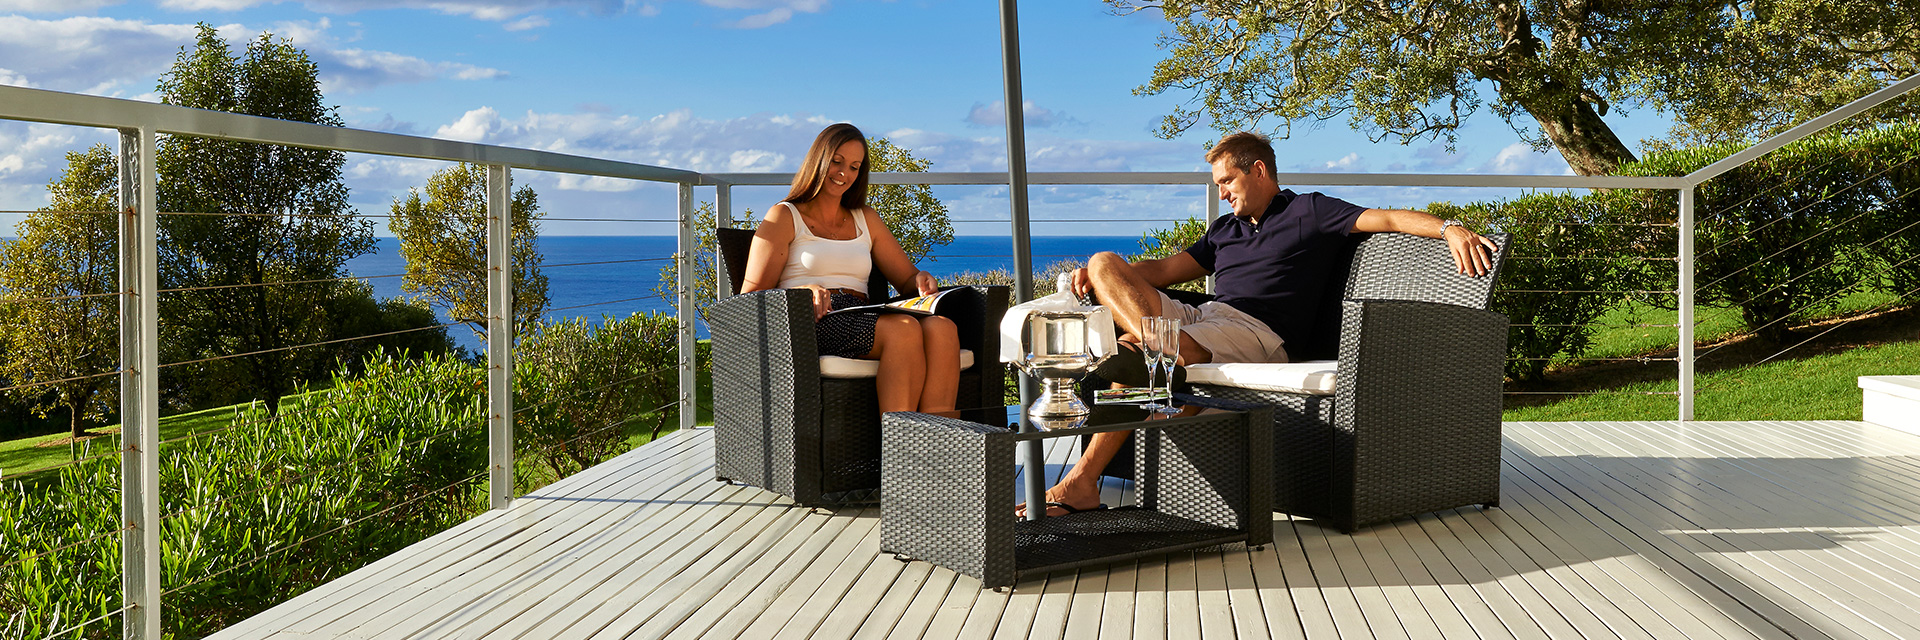 Smiling woman in white dress and man in black polo shirt sit on black wicker chairs on verandah. Trees and ocean behind